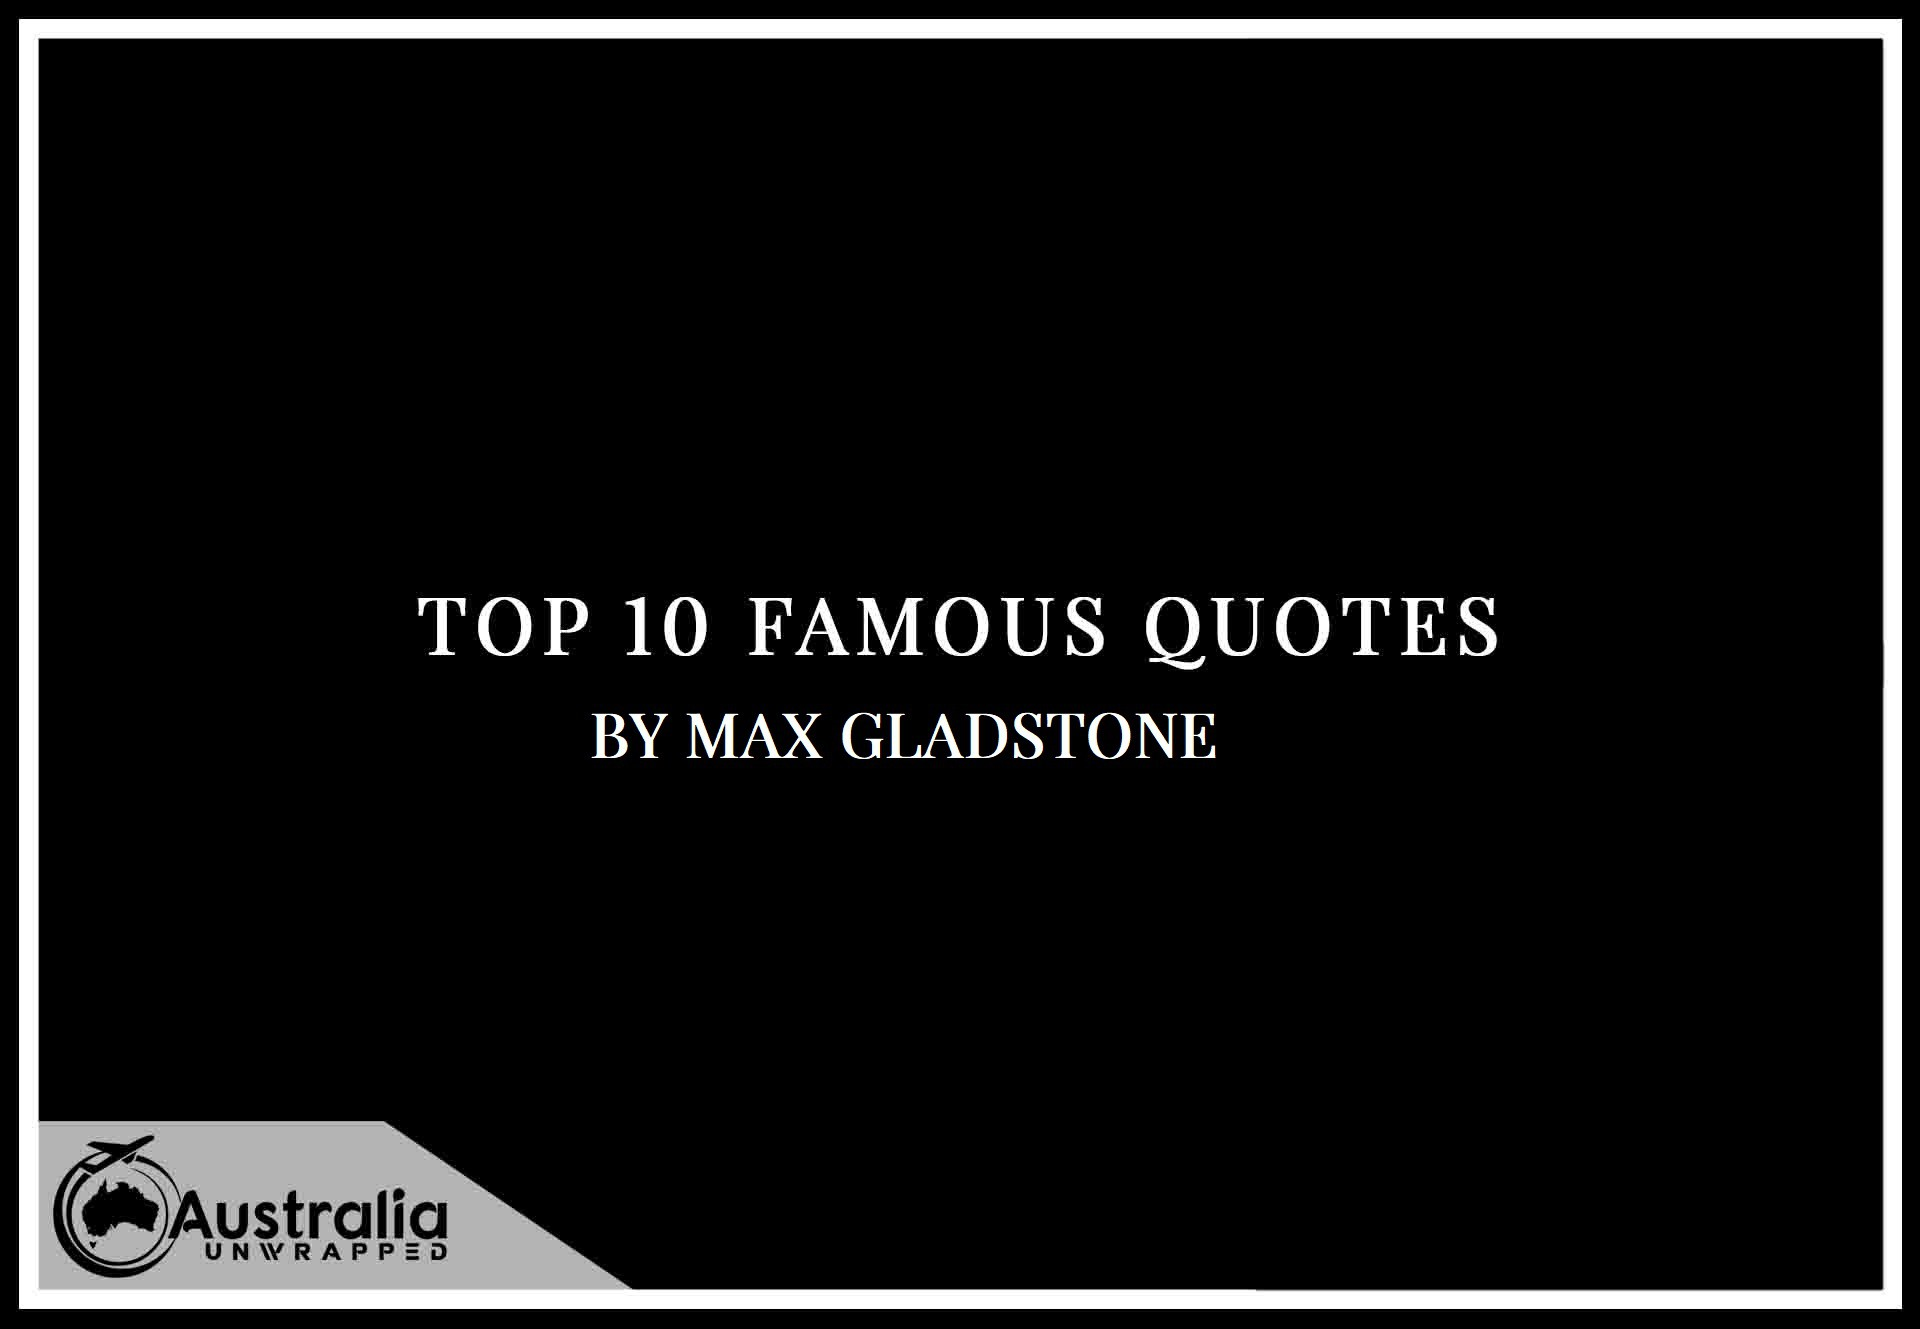 Top 10 Famous Quotes by Author Max Gladstone